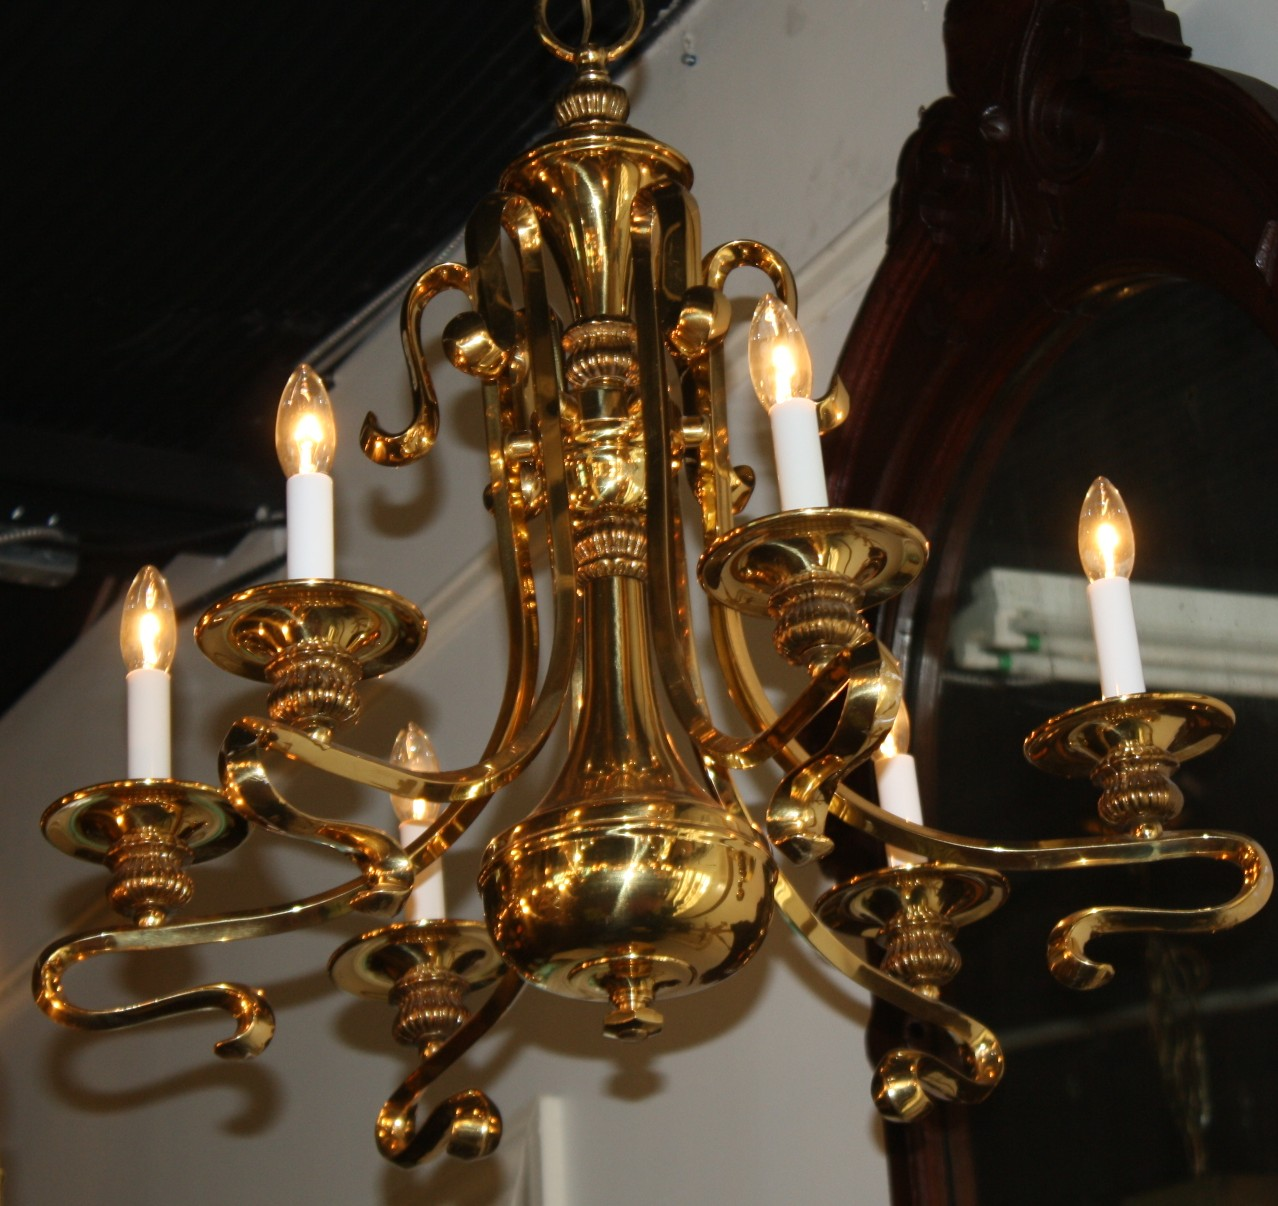 An actually good looking, brass chandelier! Six arms curl and swirl to hold  tall